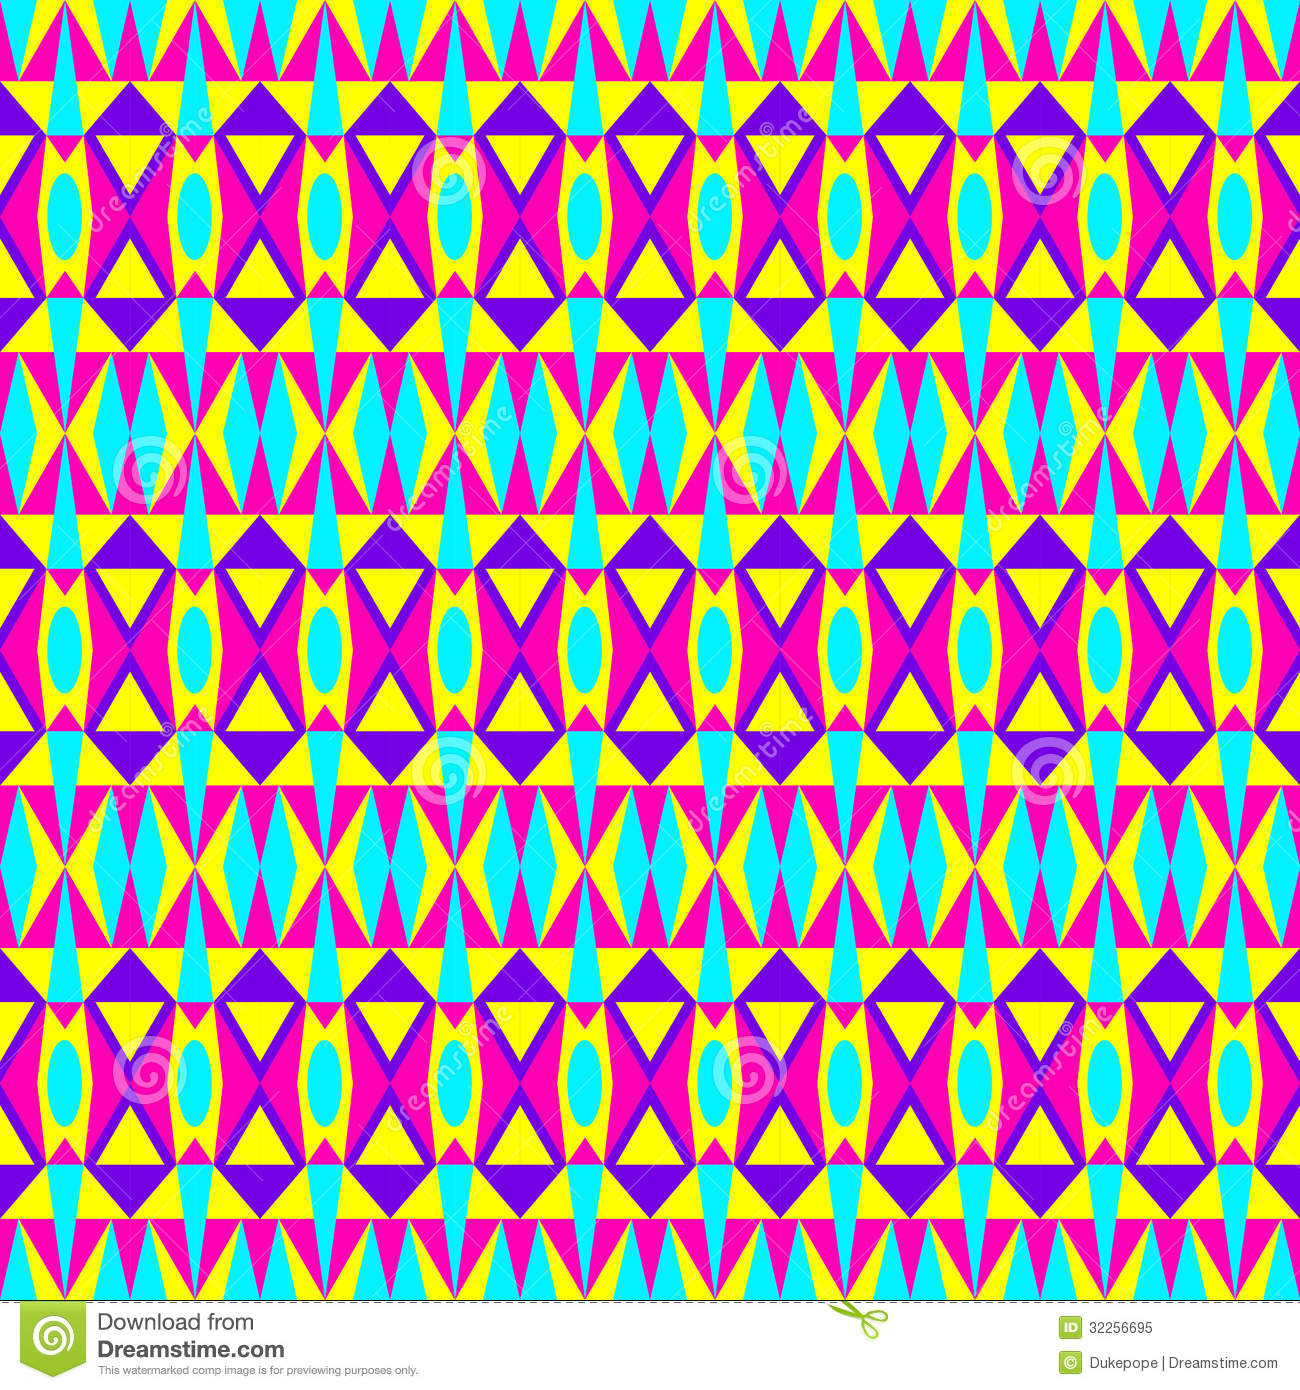 Free Download 90s Tumblr Wallpaper 80s Neon Patterns 80s